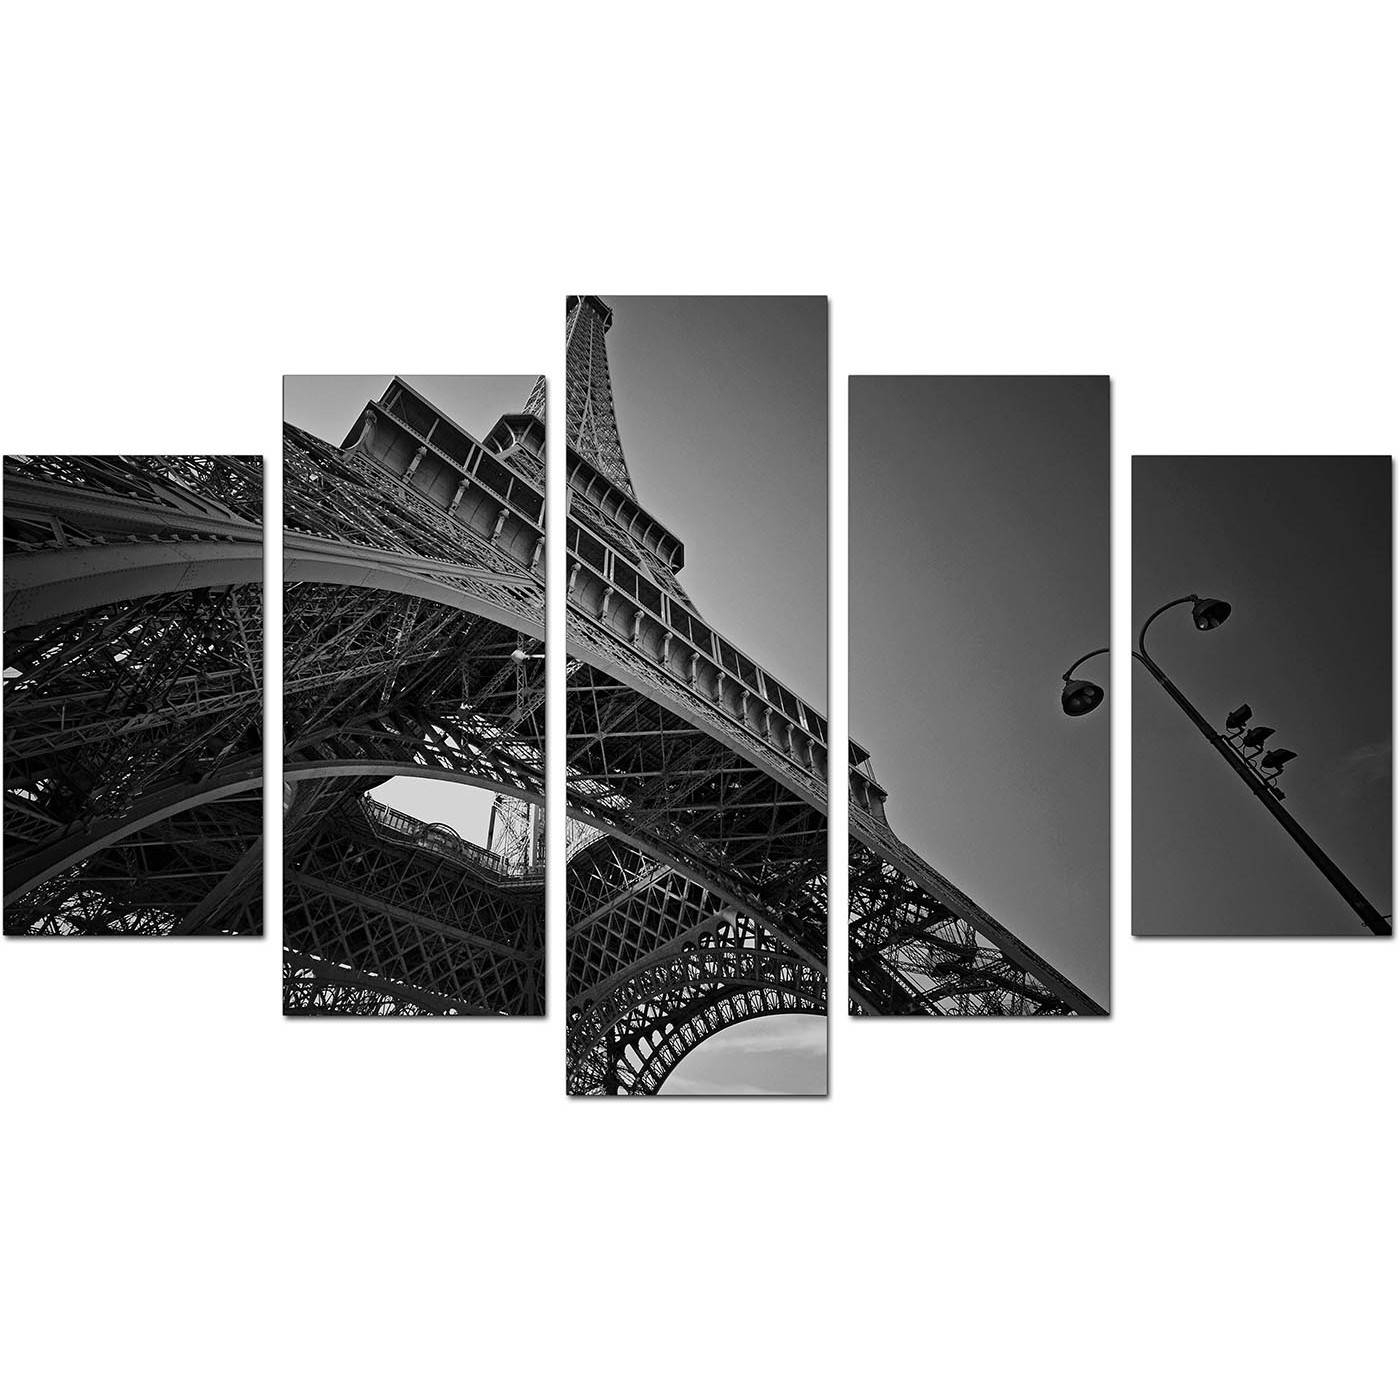 Extra Large Eiffel Tower Paris Canvas Art Set Of 5 In Black & White In Most Popular Black And White Paris Wall Art (View 9 of 25)